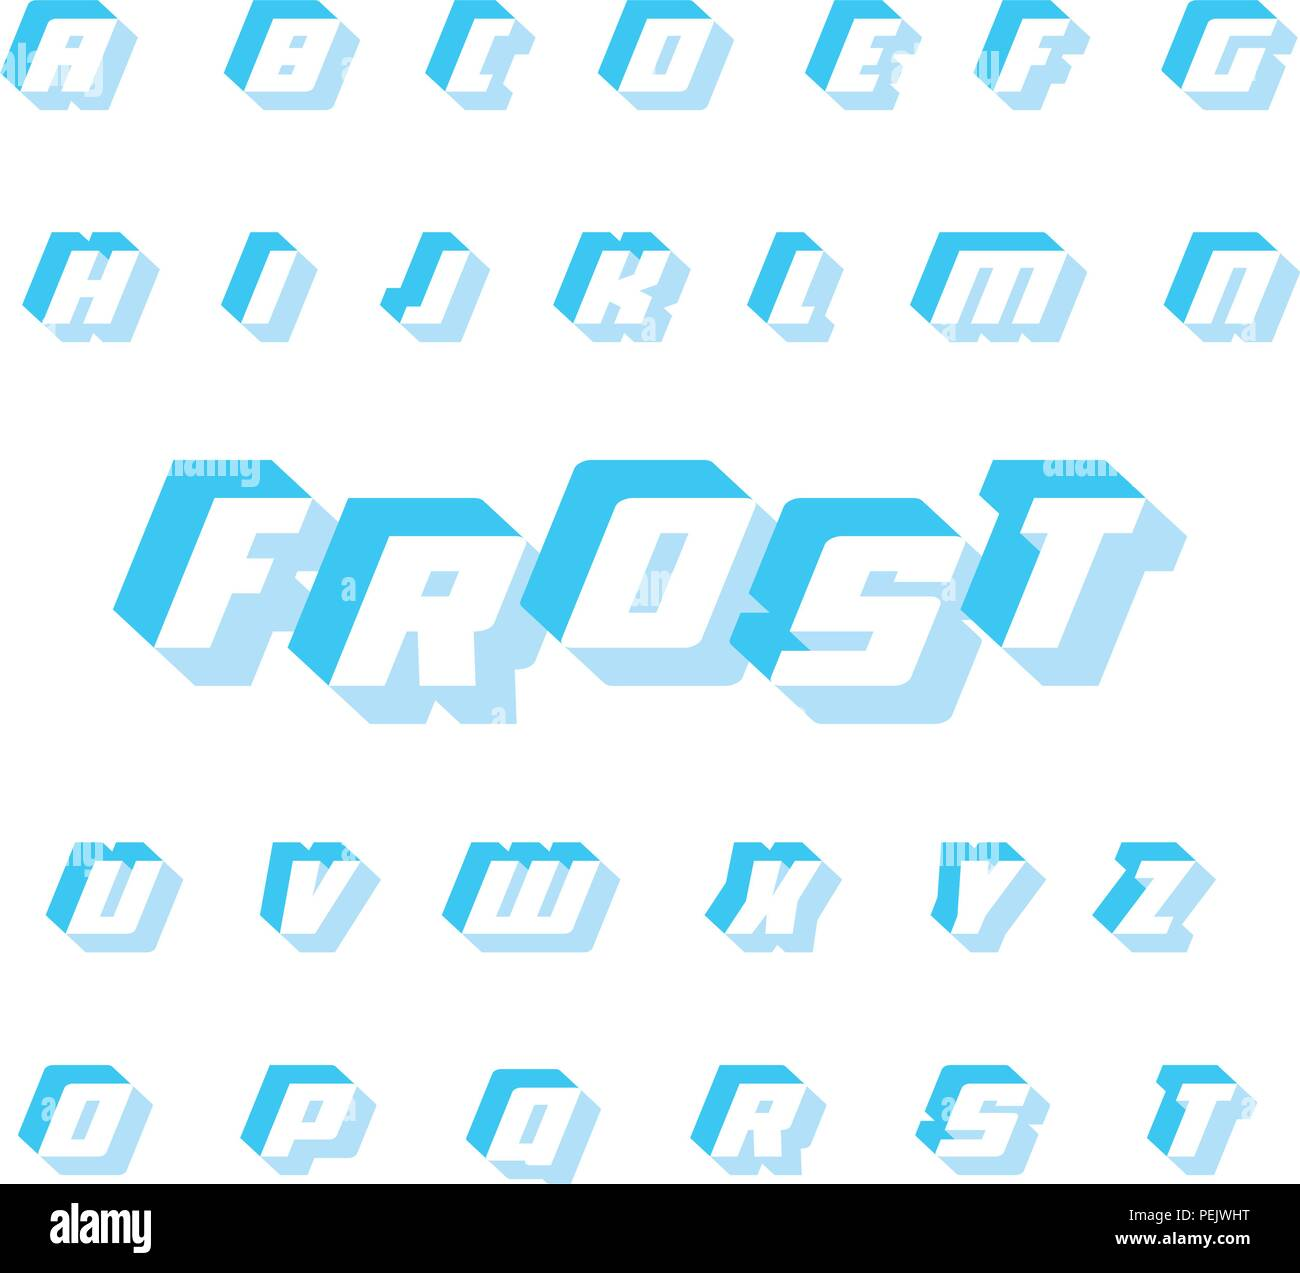 Blue Frost Font Vector Geometric Alphabet 3d Letters With Shadow